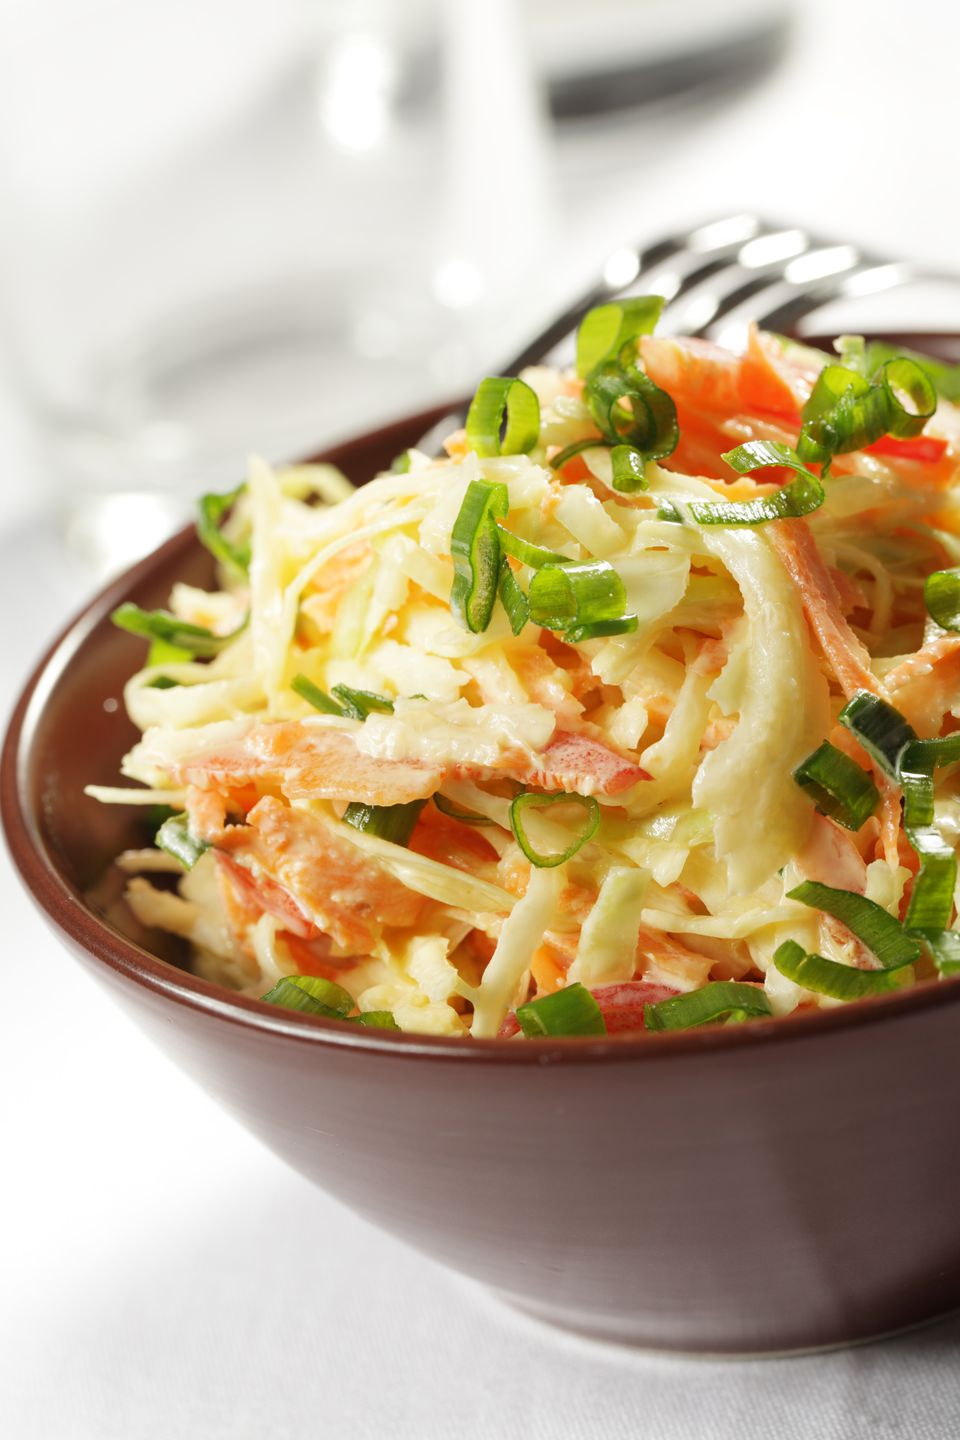 Pumpkin Seed Cole Slaw With Thai Peanut Dressing Recipe